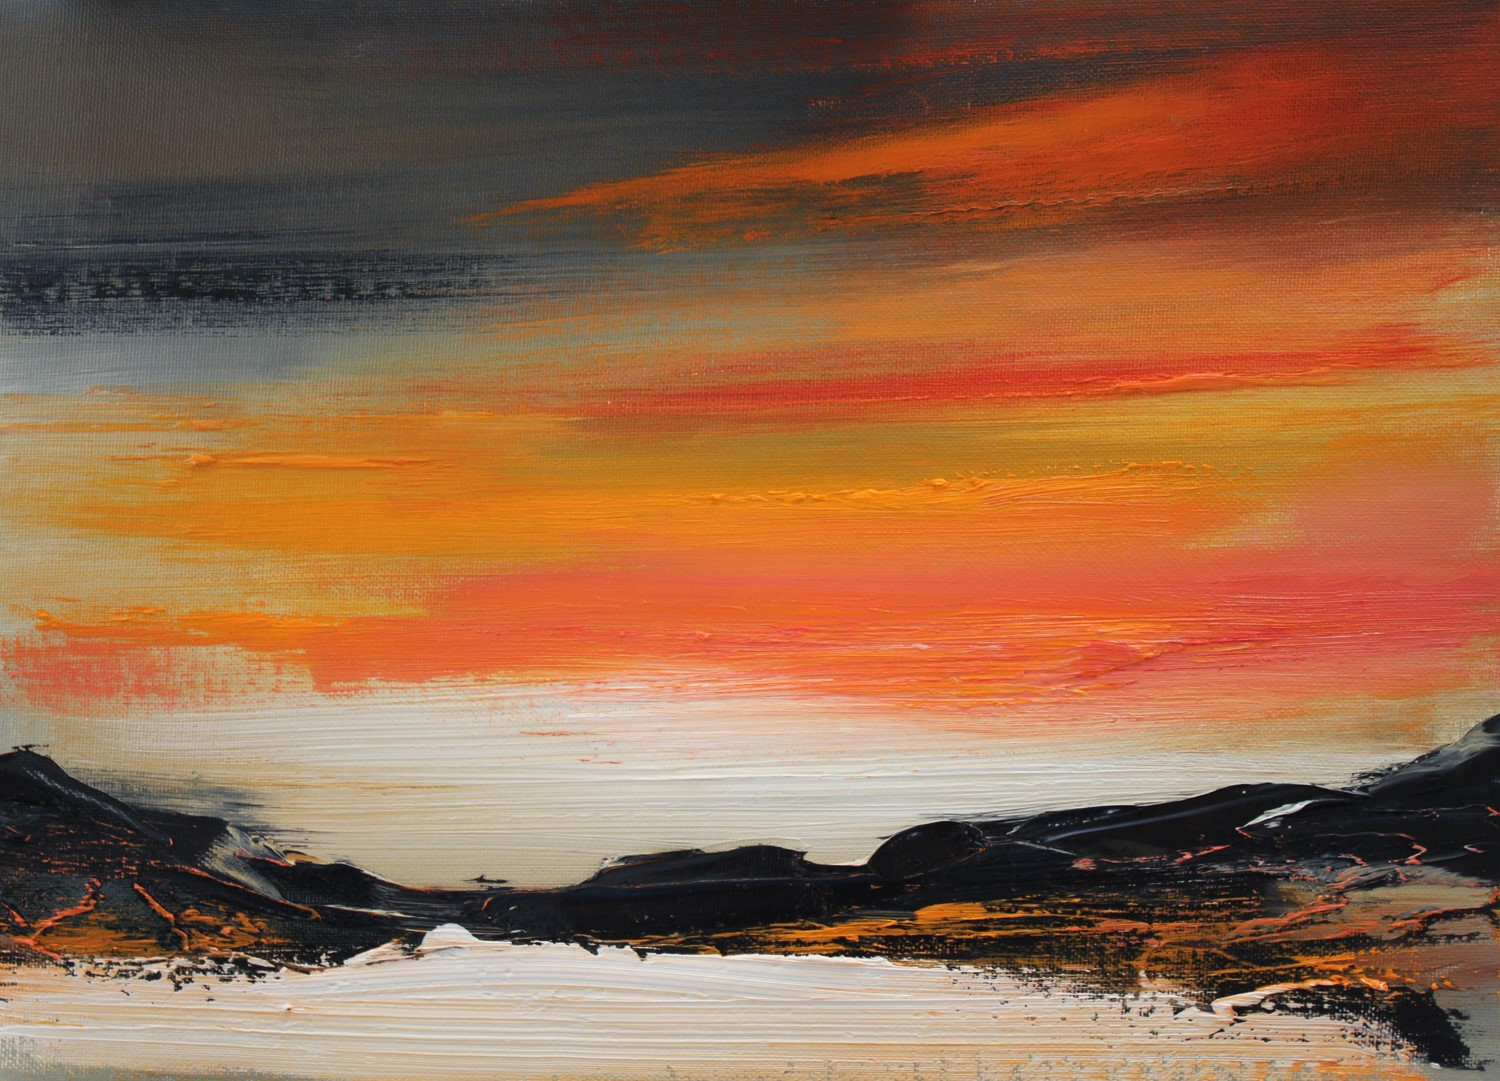 'Illuminated by the Sunset' by artist Rosanne Barr